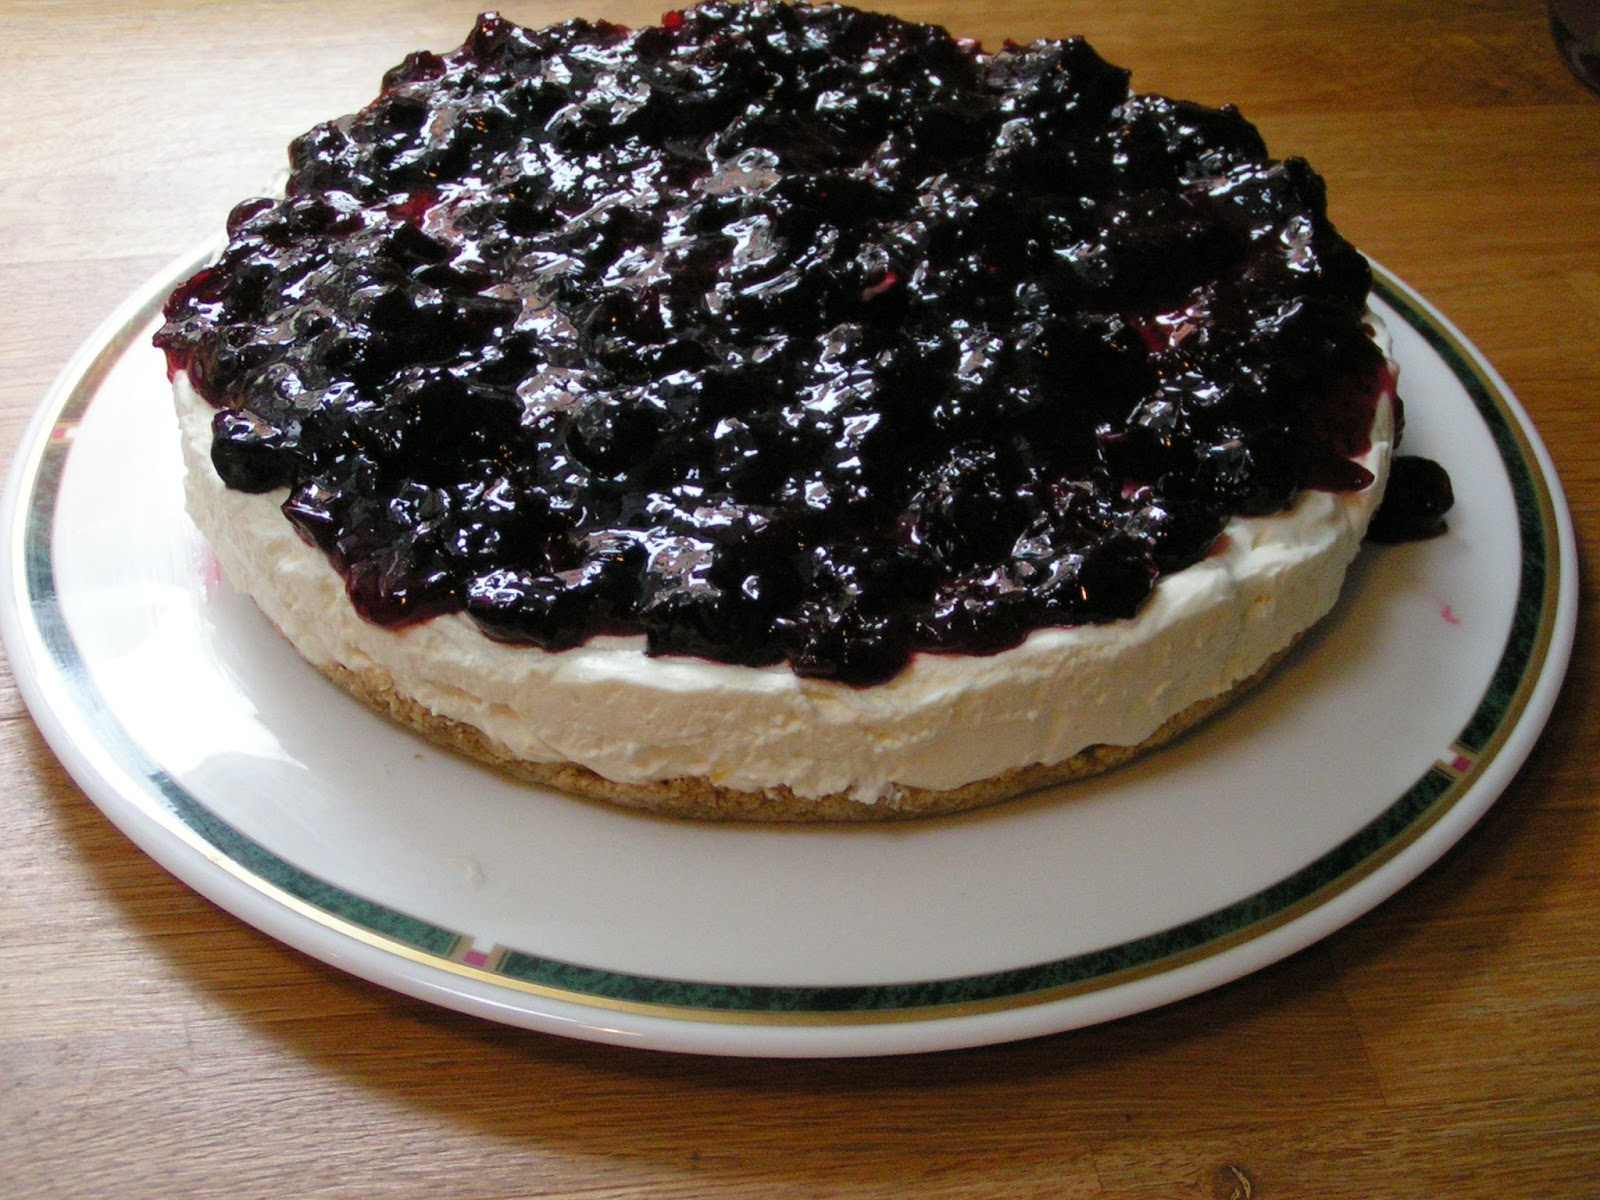 Reckless cheesecake & blackcurrant jam